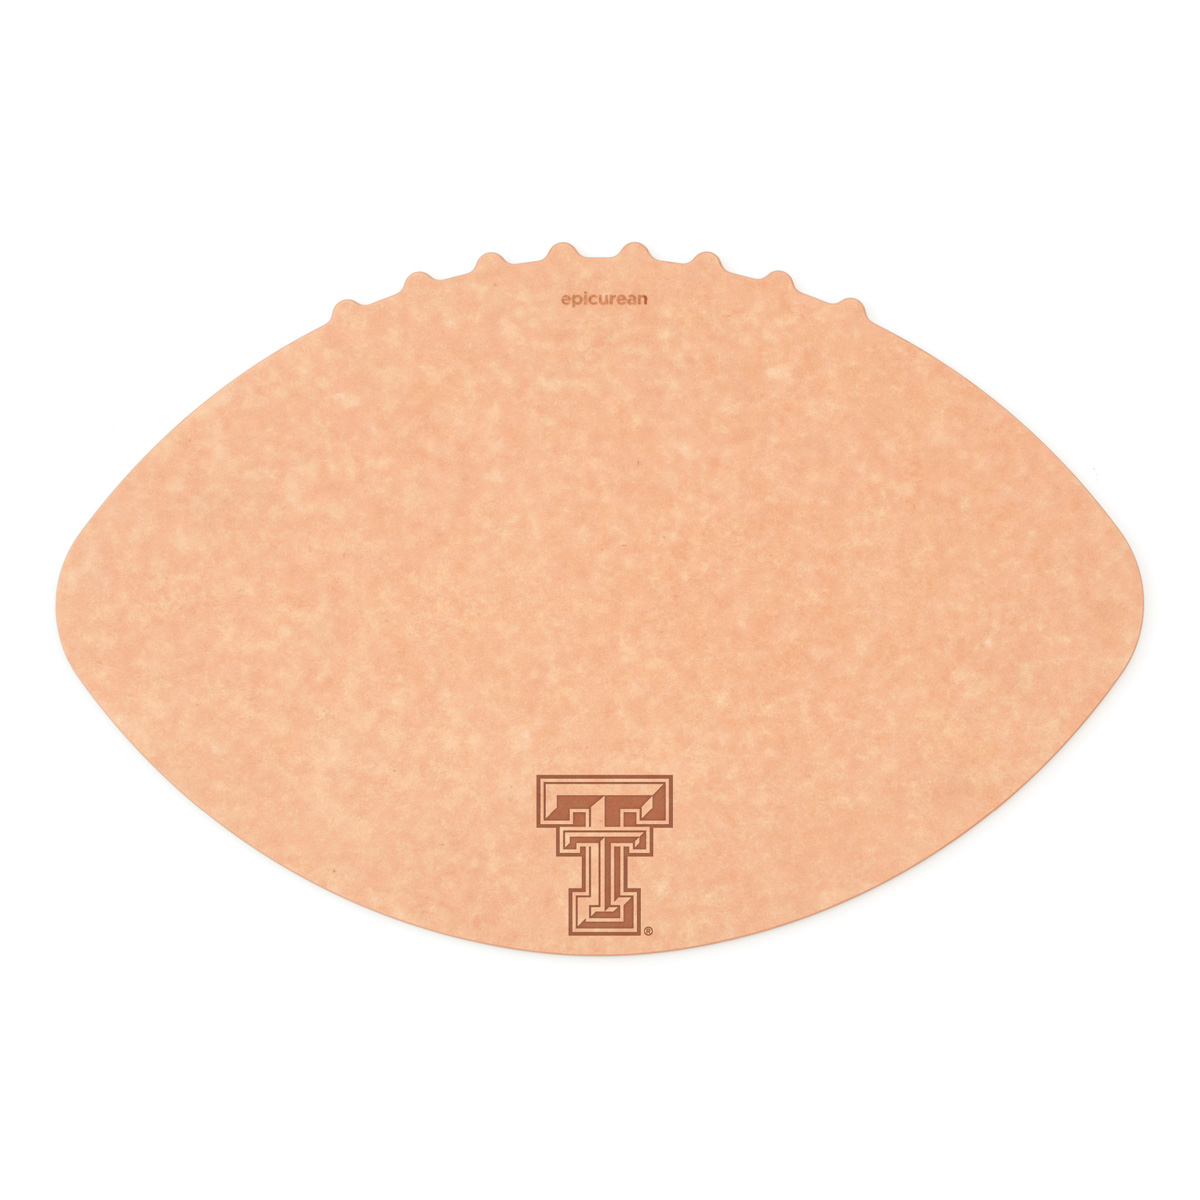 Epicurean Texas Tech University 16 x 10.5 Inch Football Cutting and Serving Board